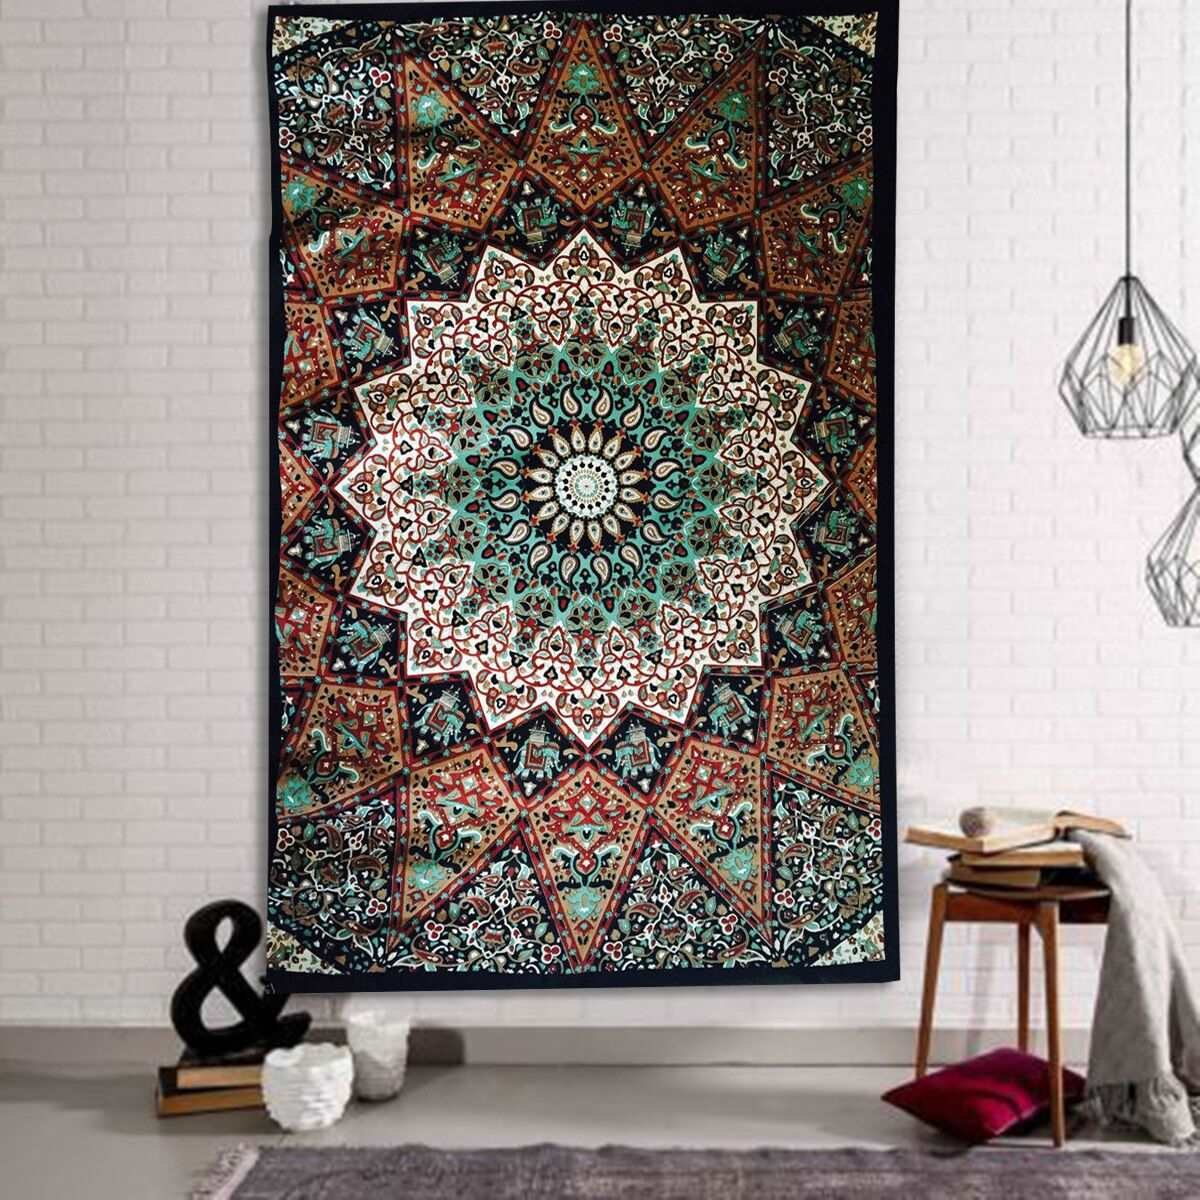 ᗐbohemian Style Wall Hanging Tapestry ჱ 210x145cm Indian